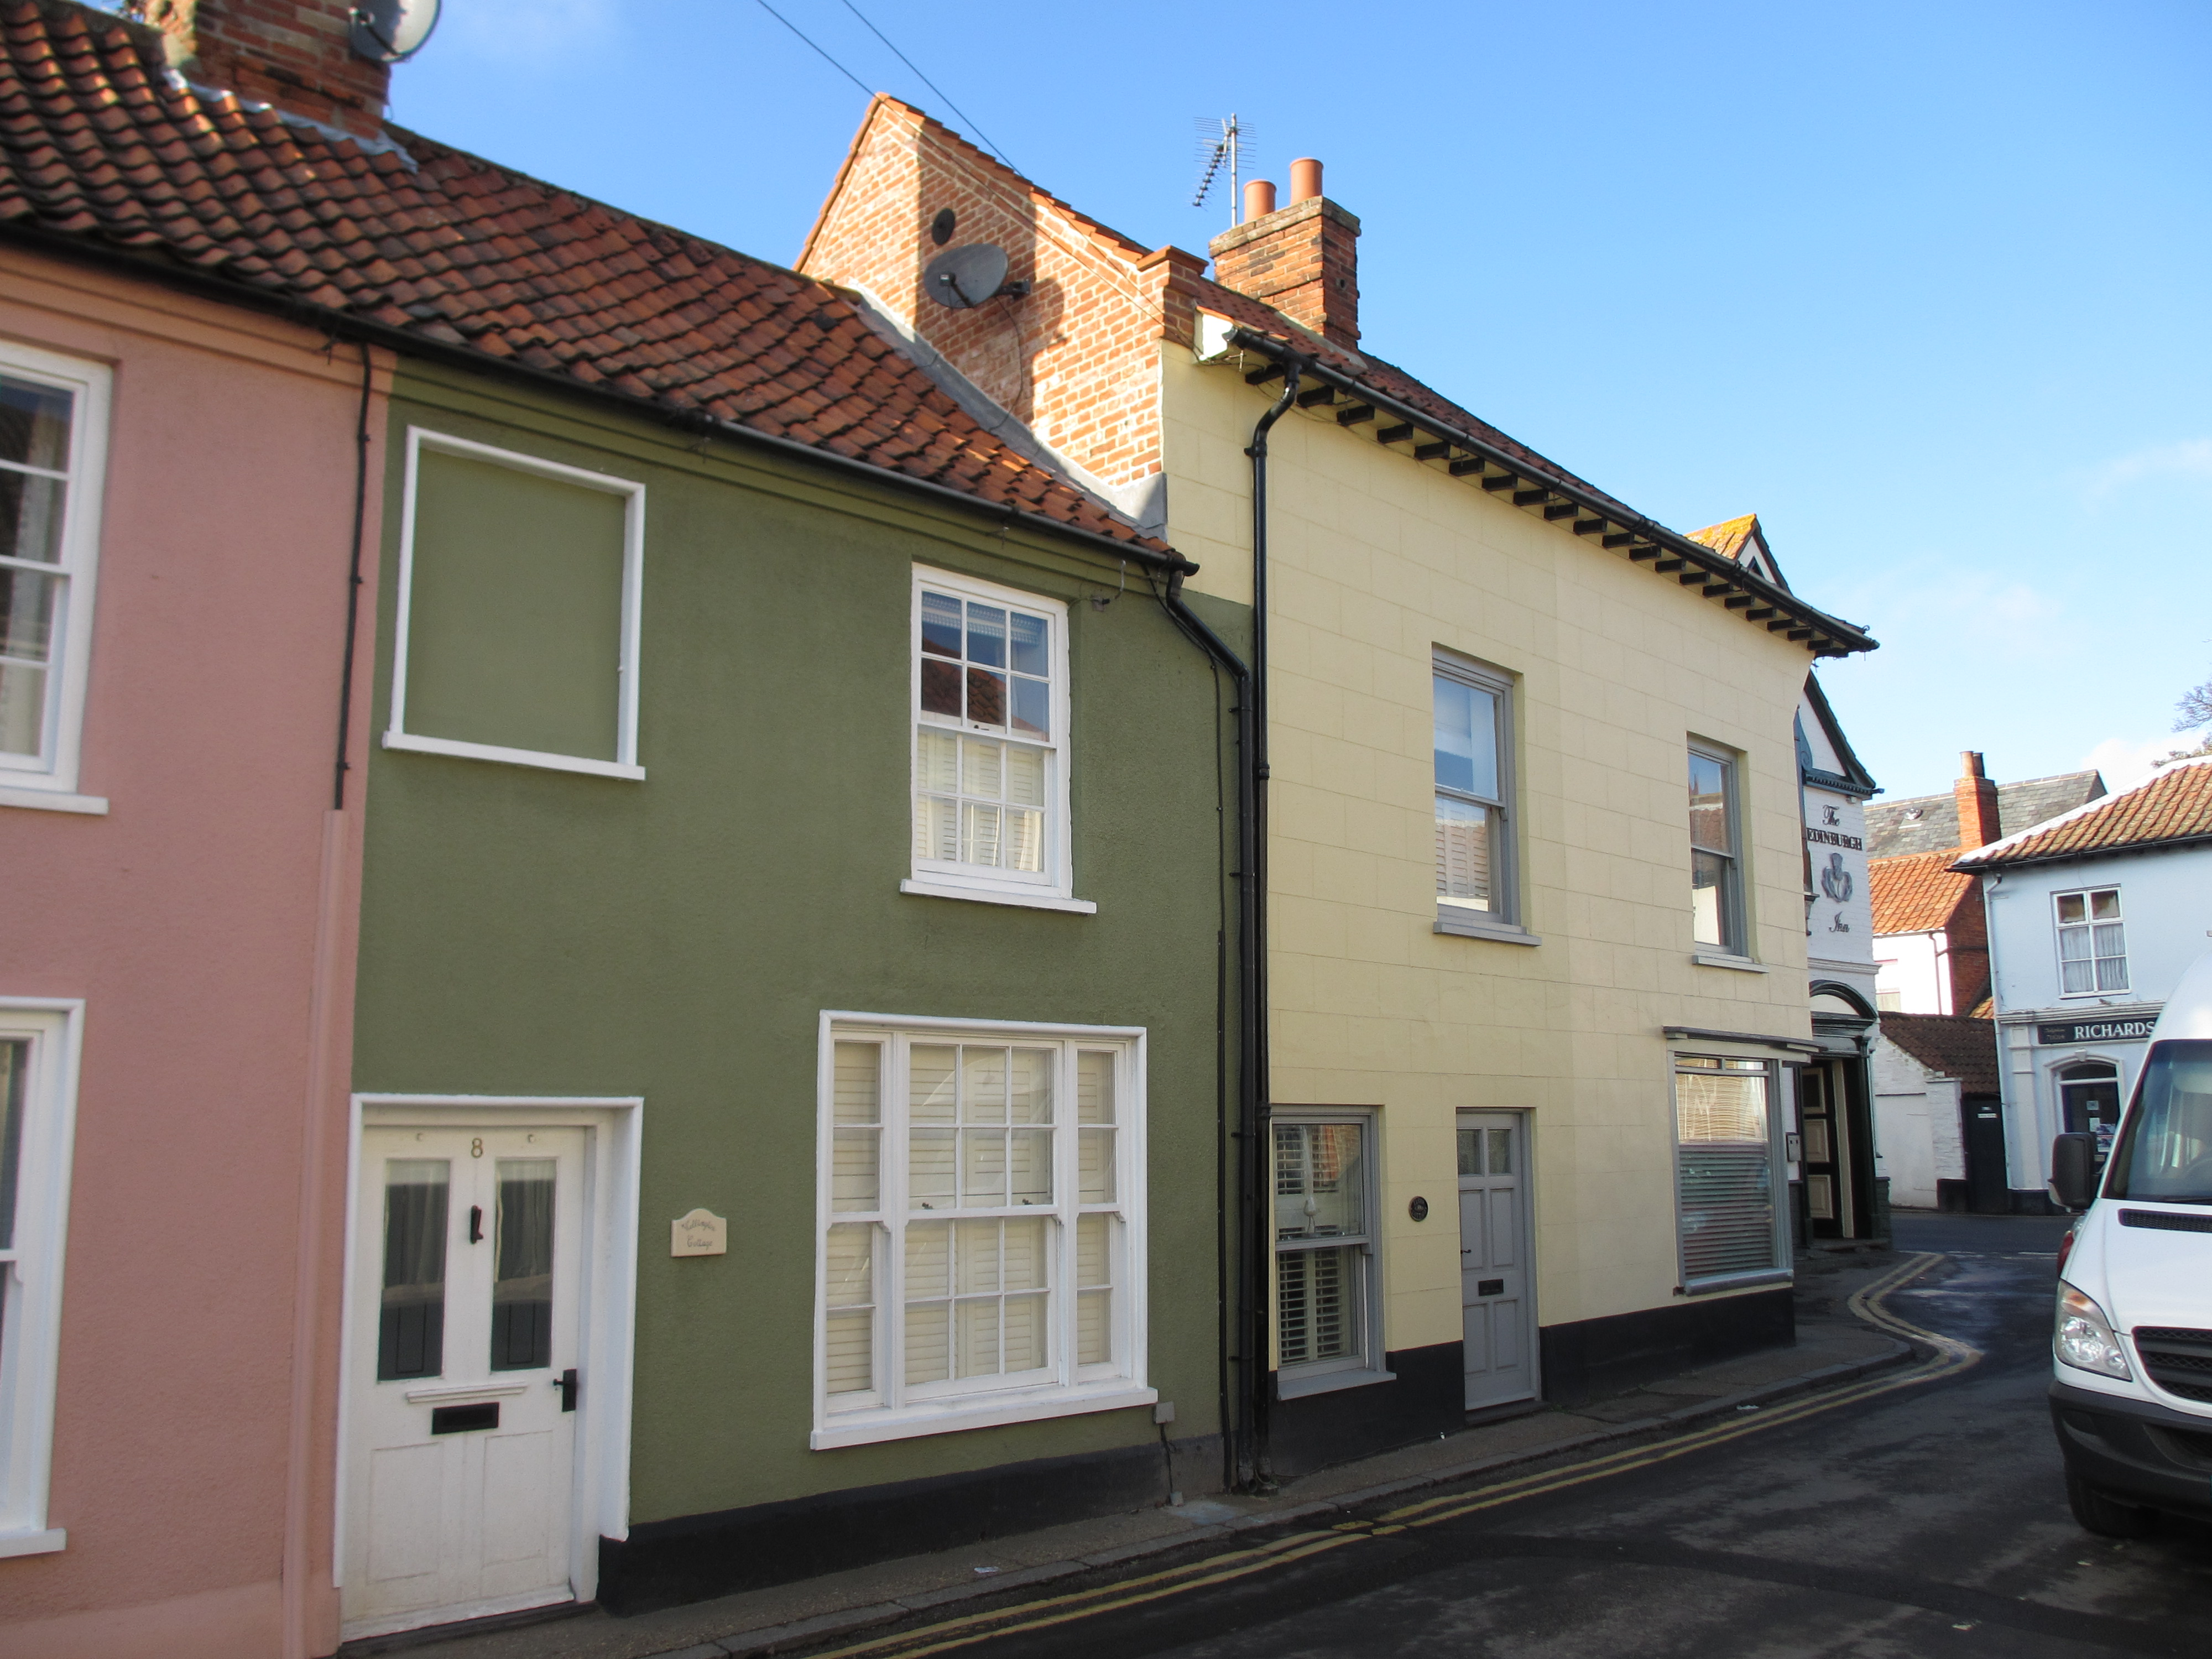 The High Street at Wells-next-the-Sea